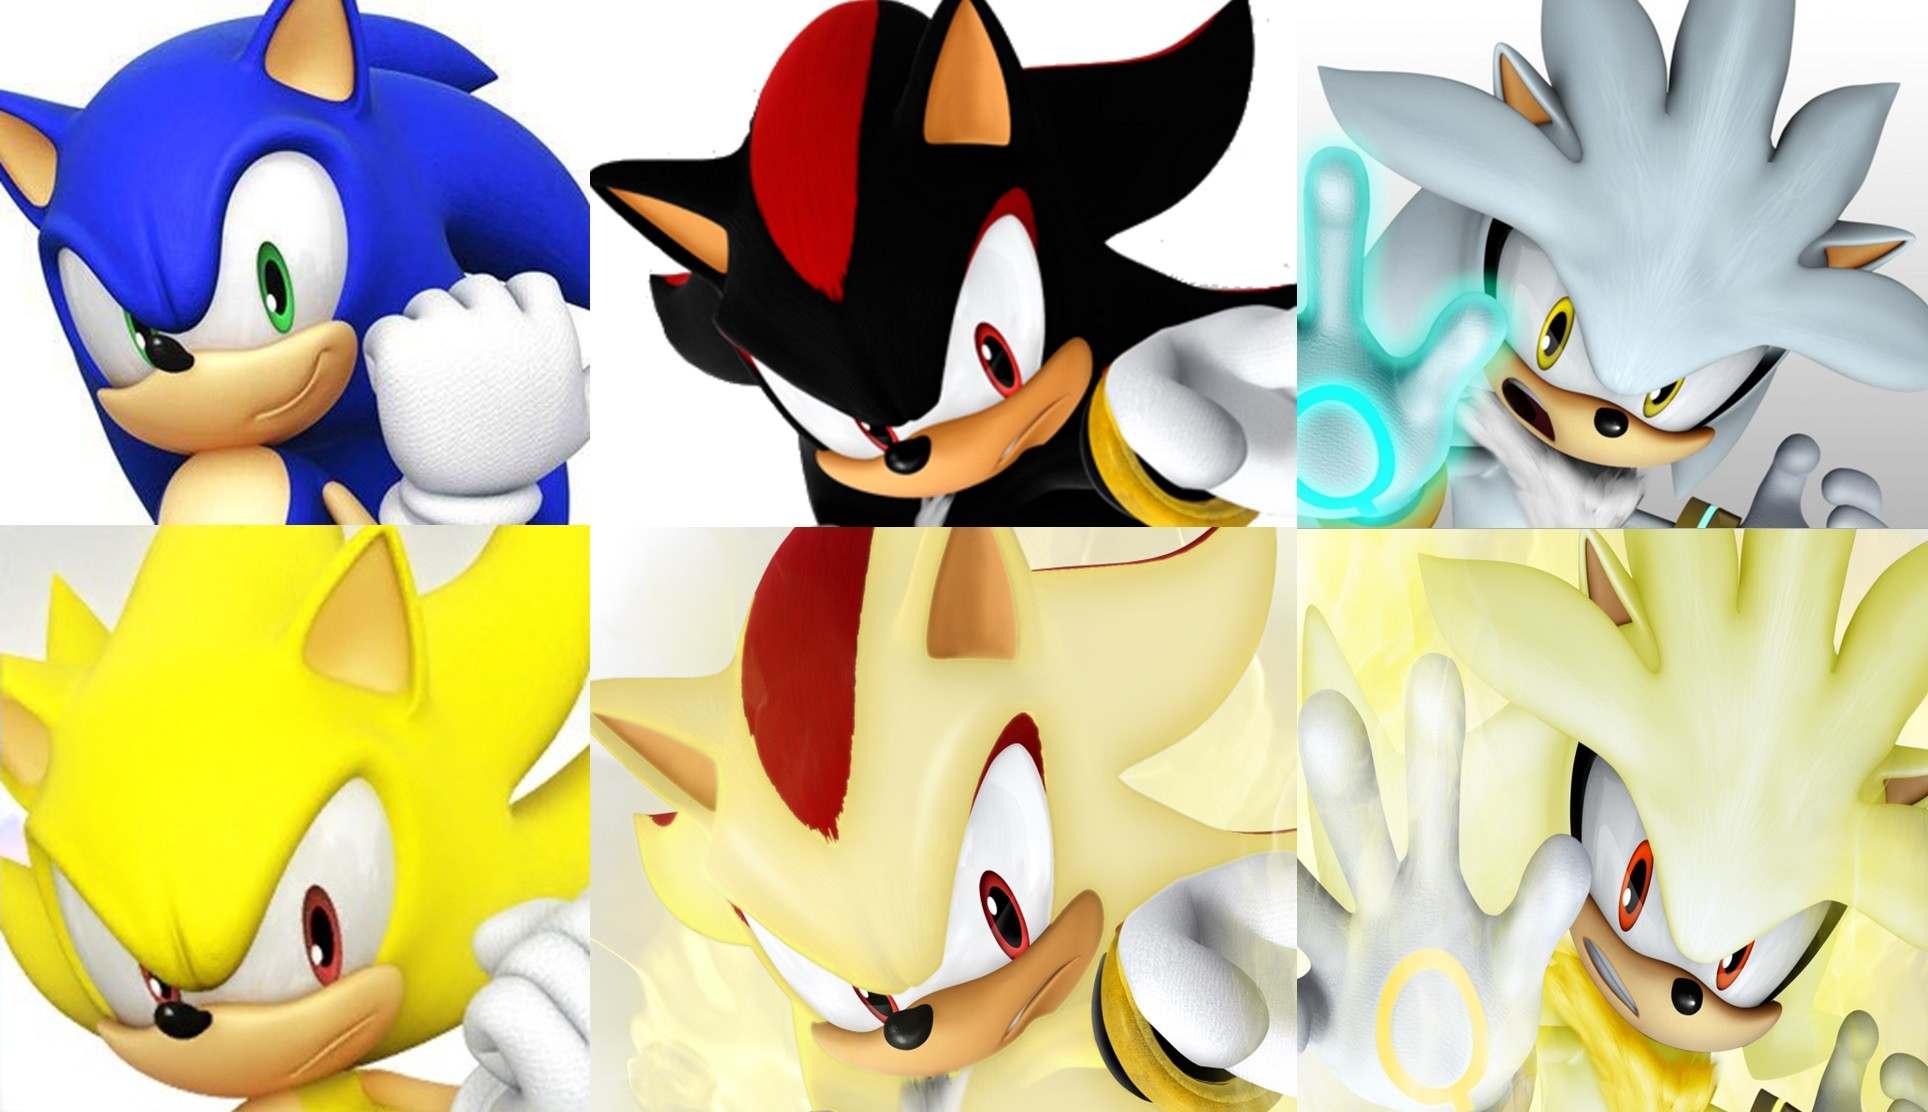 1928x1112 Sonic, Shadow, and Silver images Sonic Shadow and Silver Super forms Same  Pose SEGA Sonic Team HD wallpaper and background photos